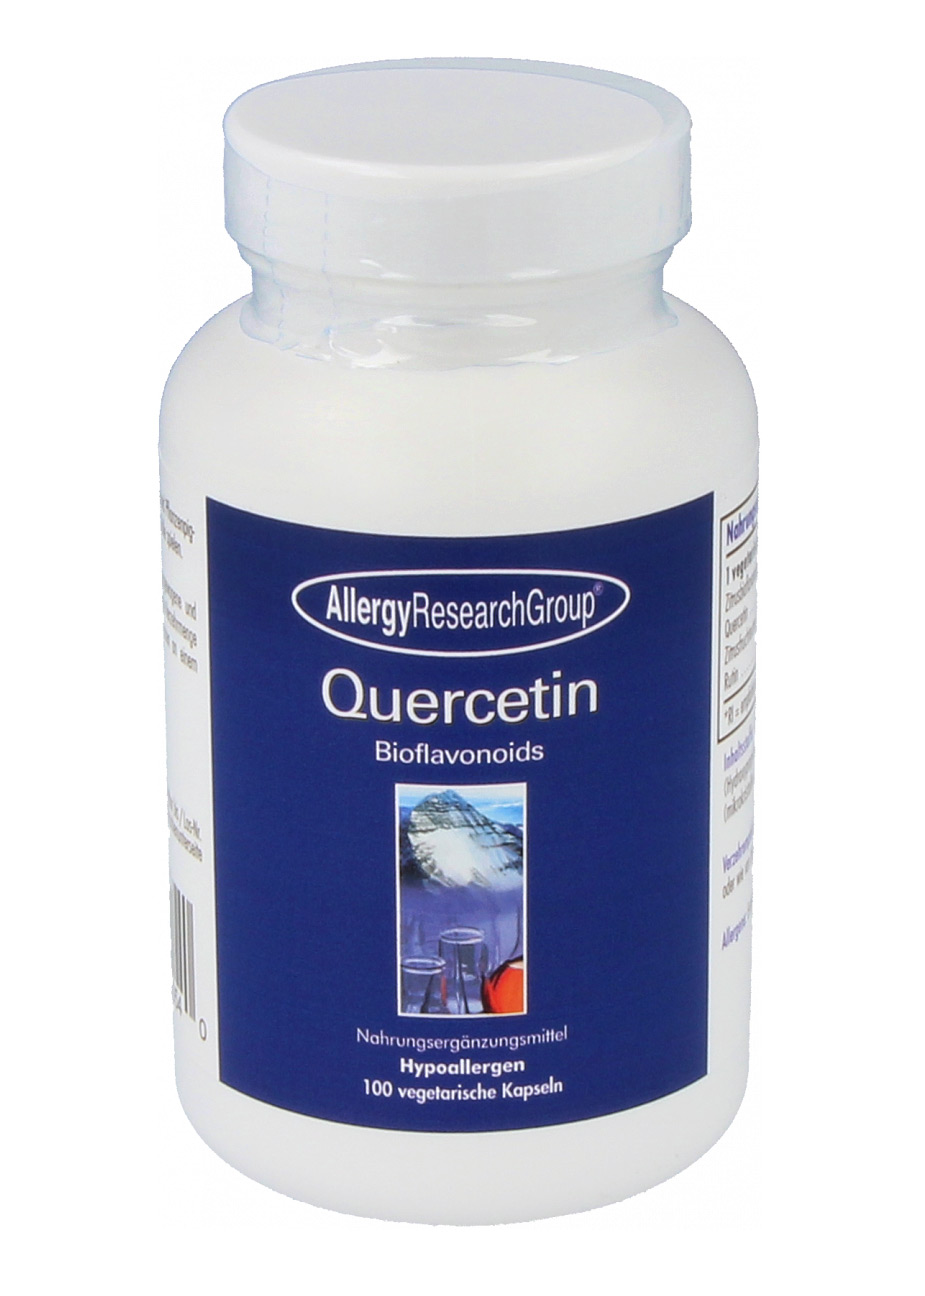 Allergy Research Group Quercetin Bioflavonoids 100 veg. Kapseln